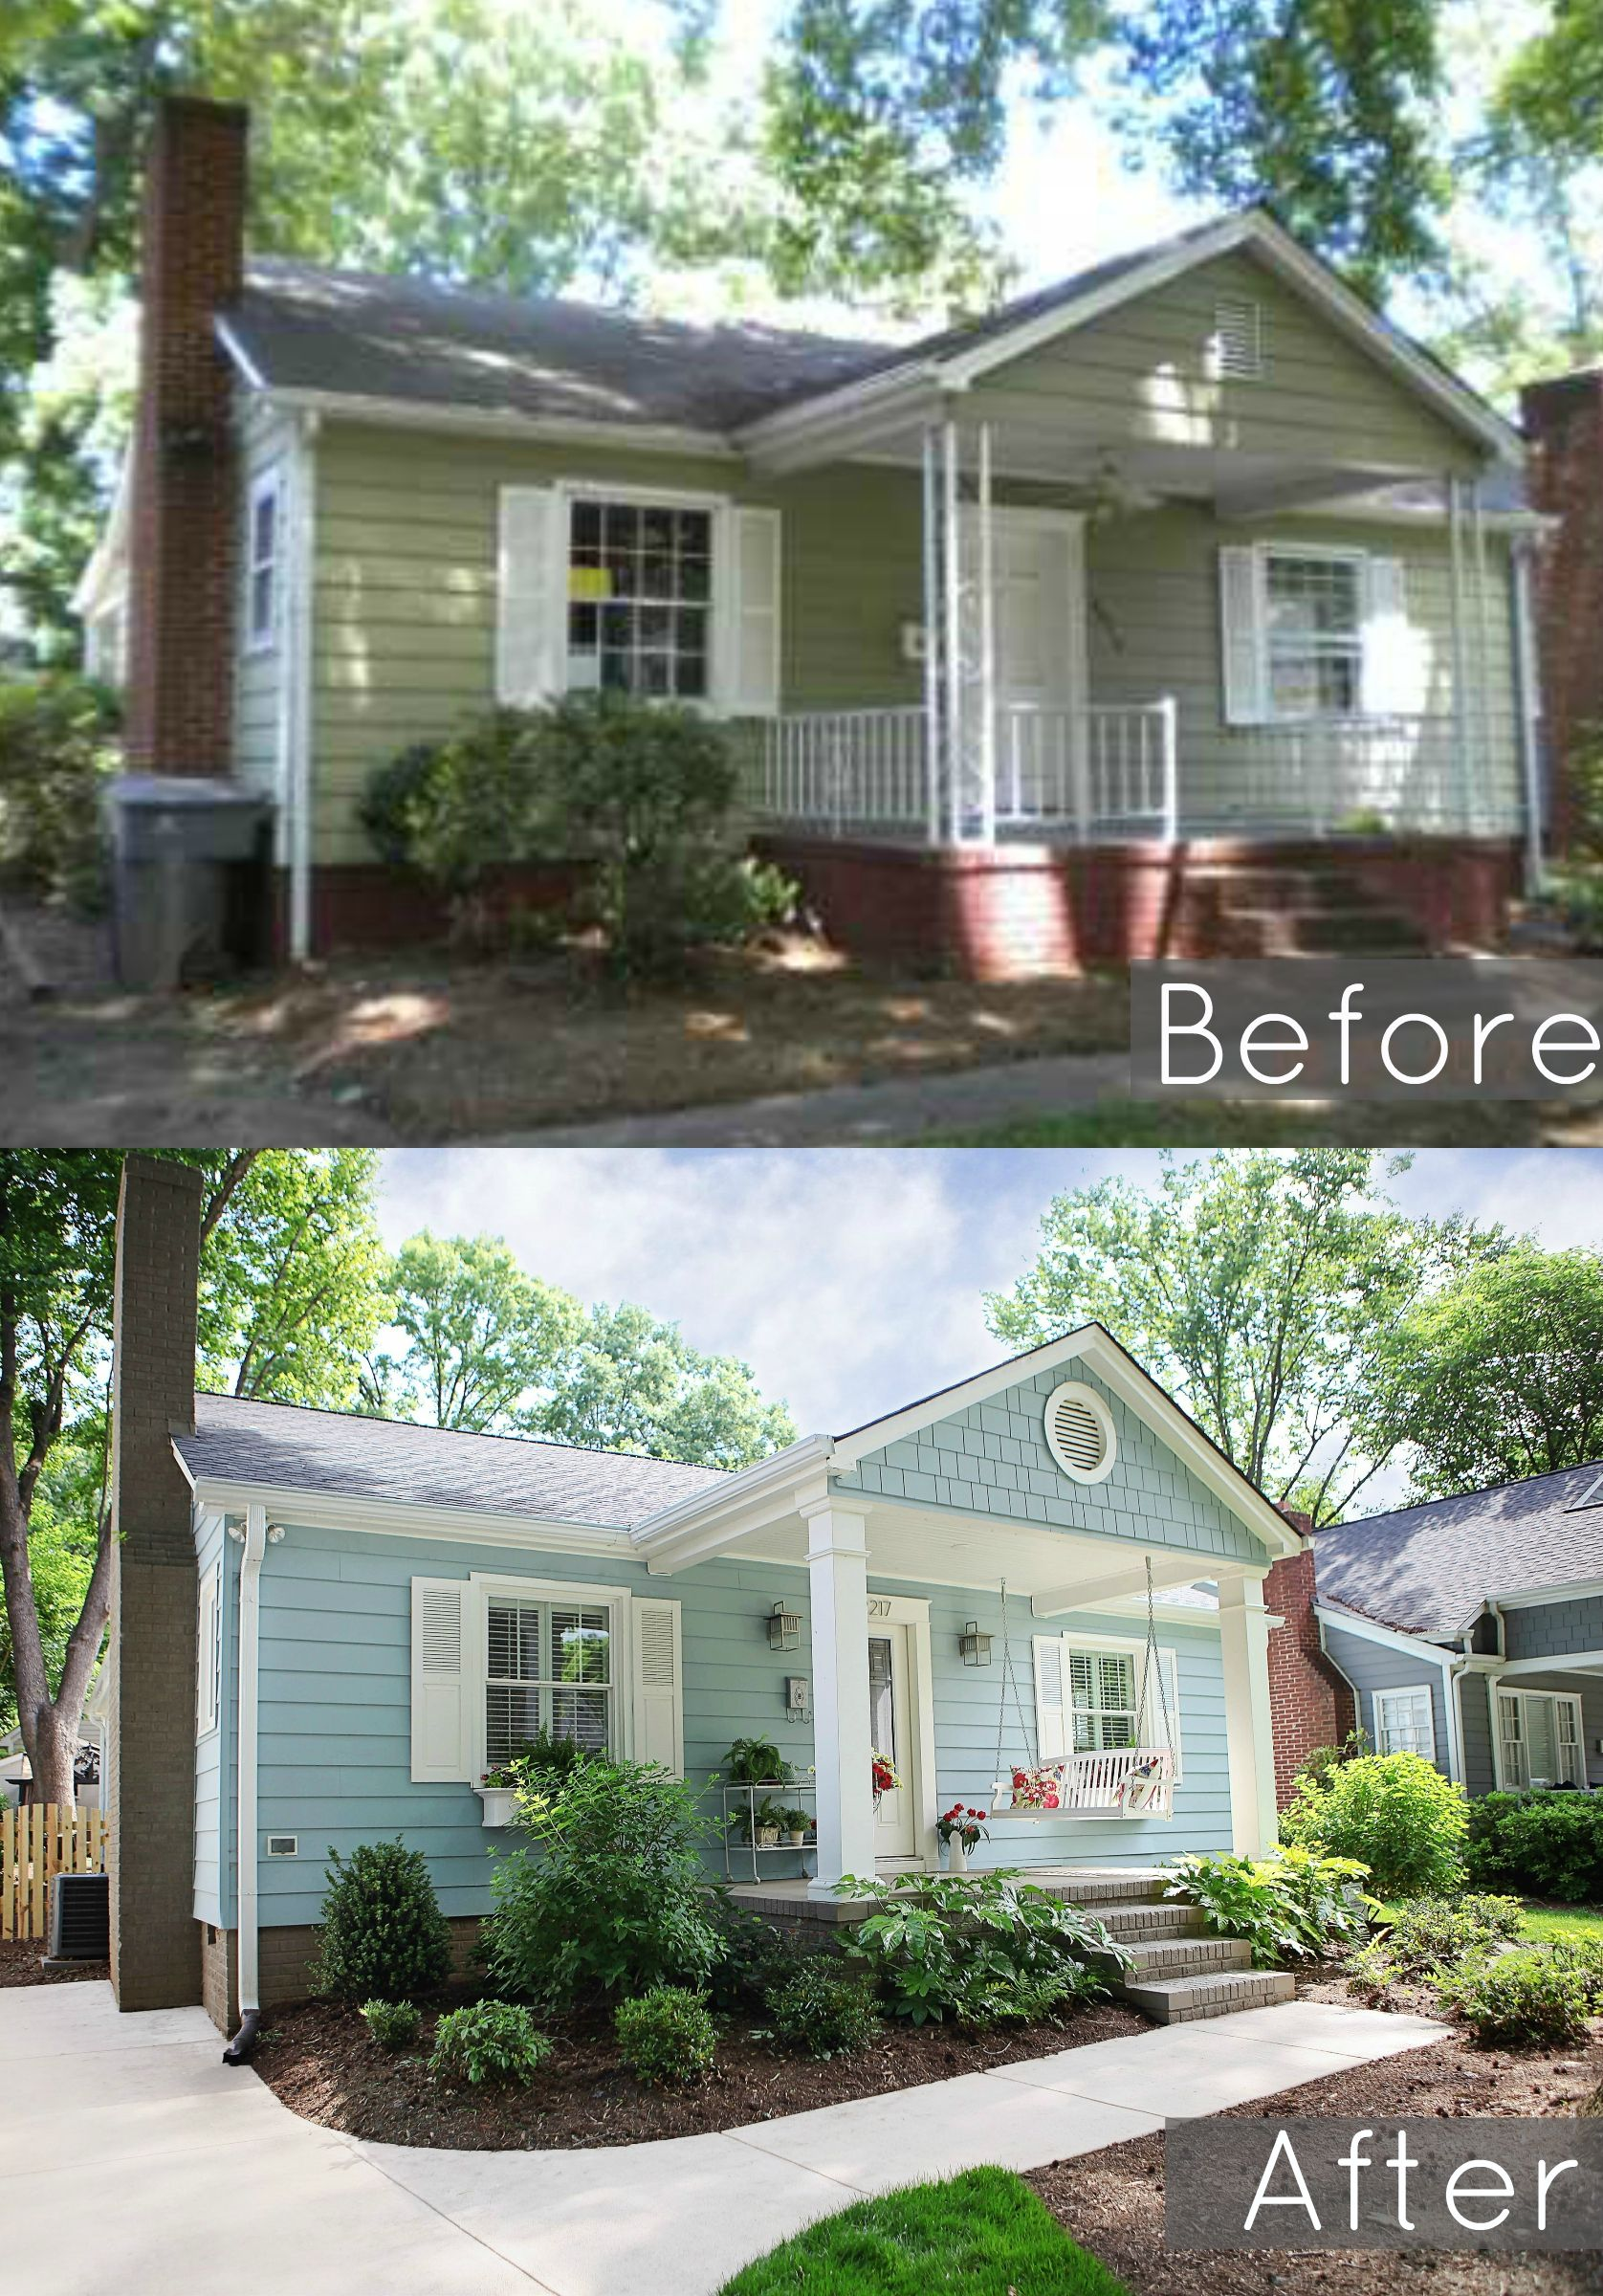 Before And After Of Our 1940's Bungalows Exterior